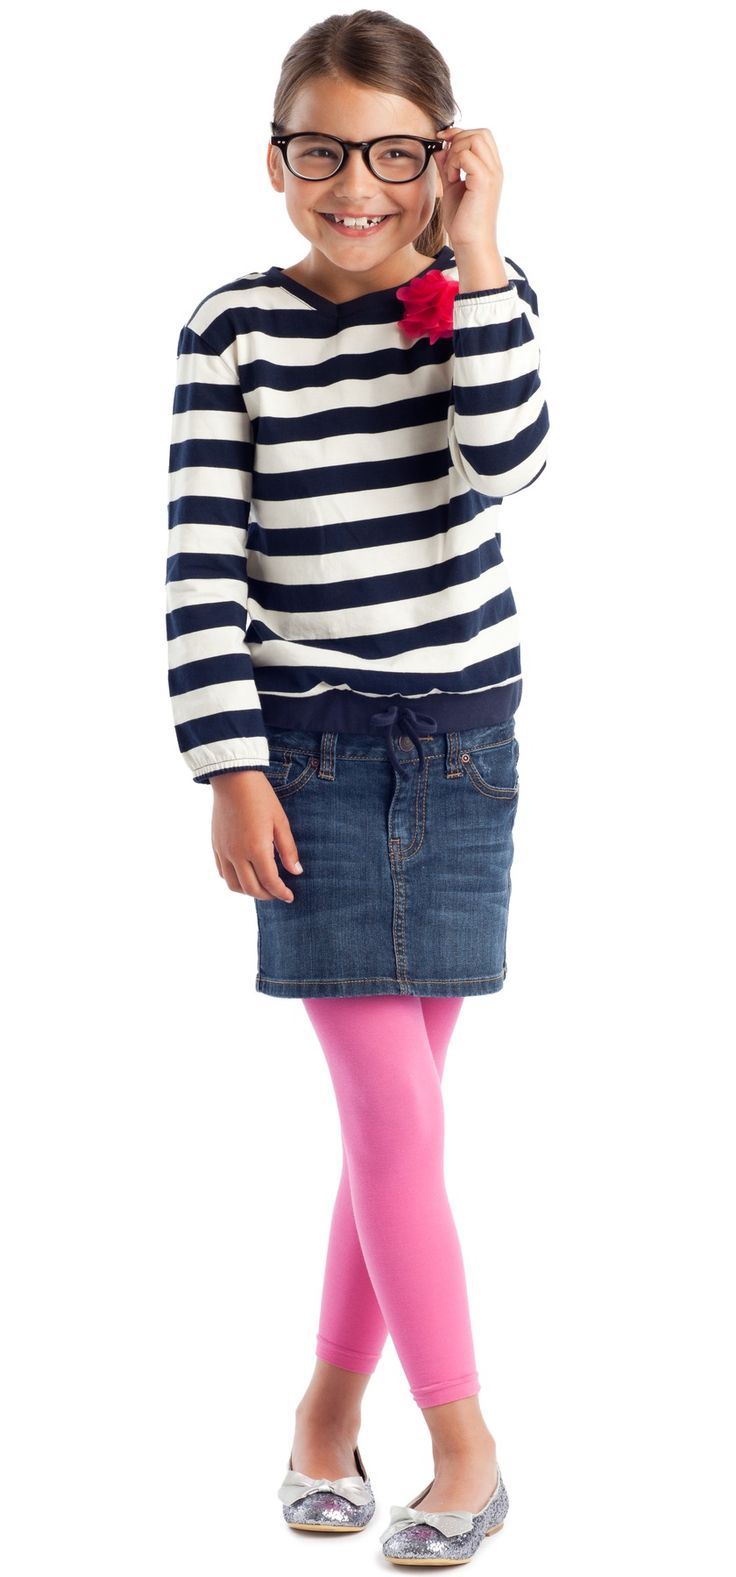 199 best images about Sophiau0026#39;s Board on Pinterest | Kids clothing Jcrew and Fashion kids